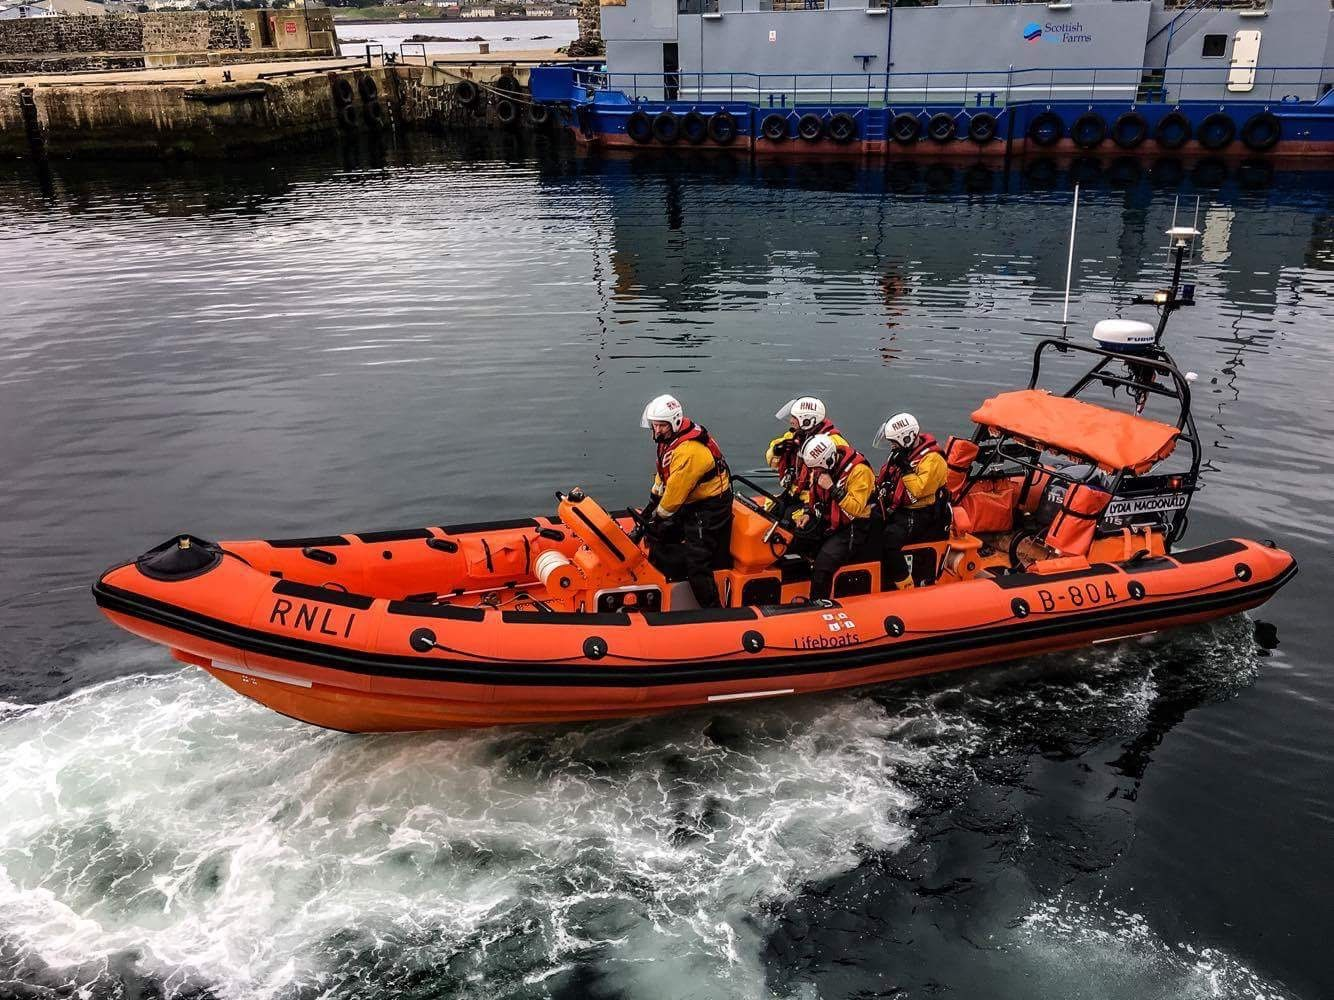 Orange lifeboat B 804 with four crew on board